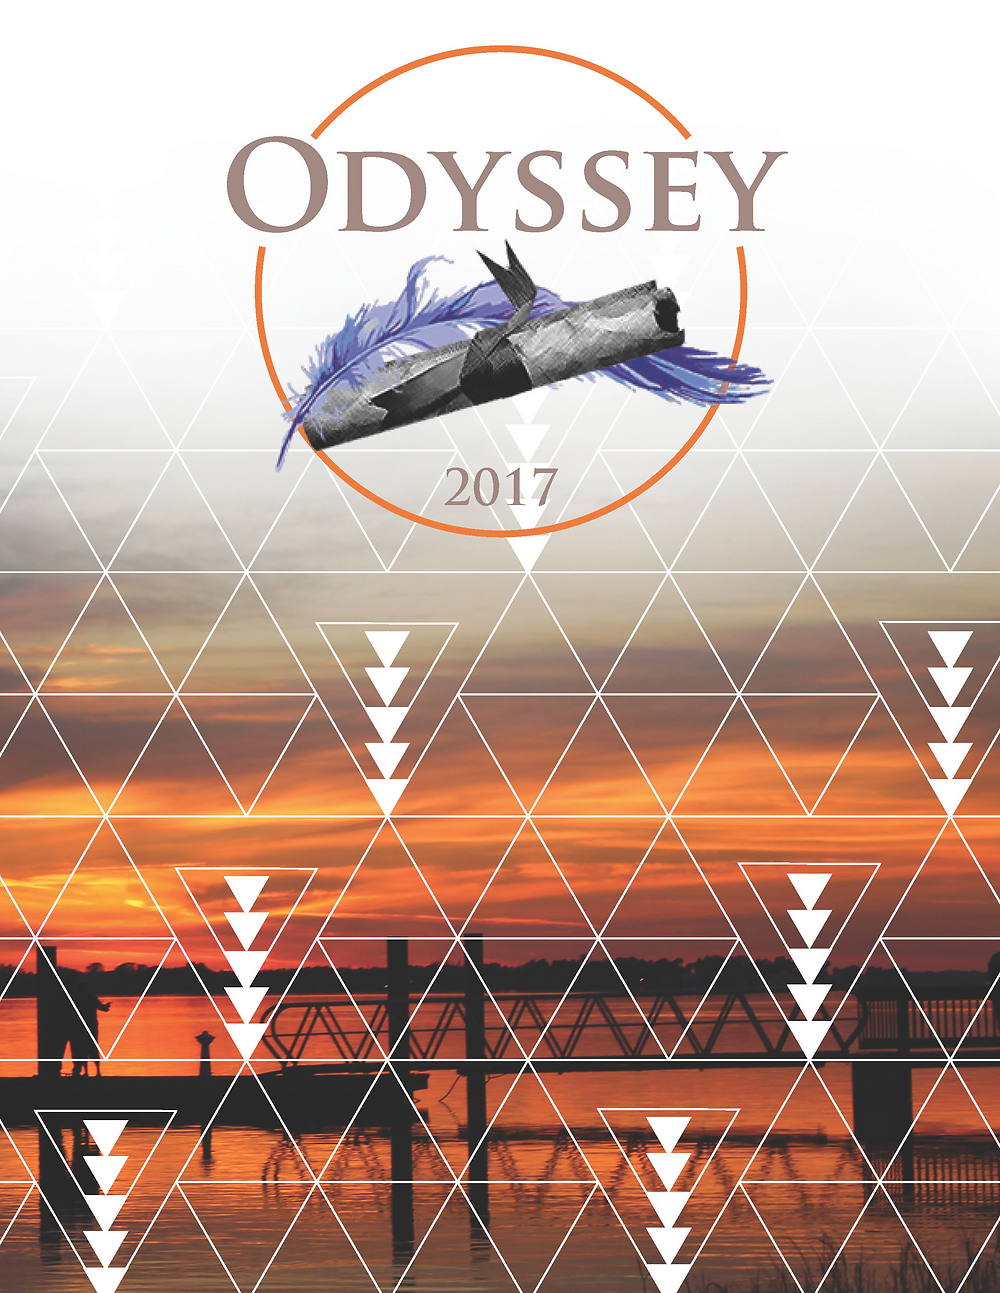 Odyssey 2017 Cover art by Zoe Davis (Designer) and Nolan Lingenfelter (Photographer)